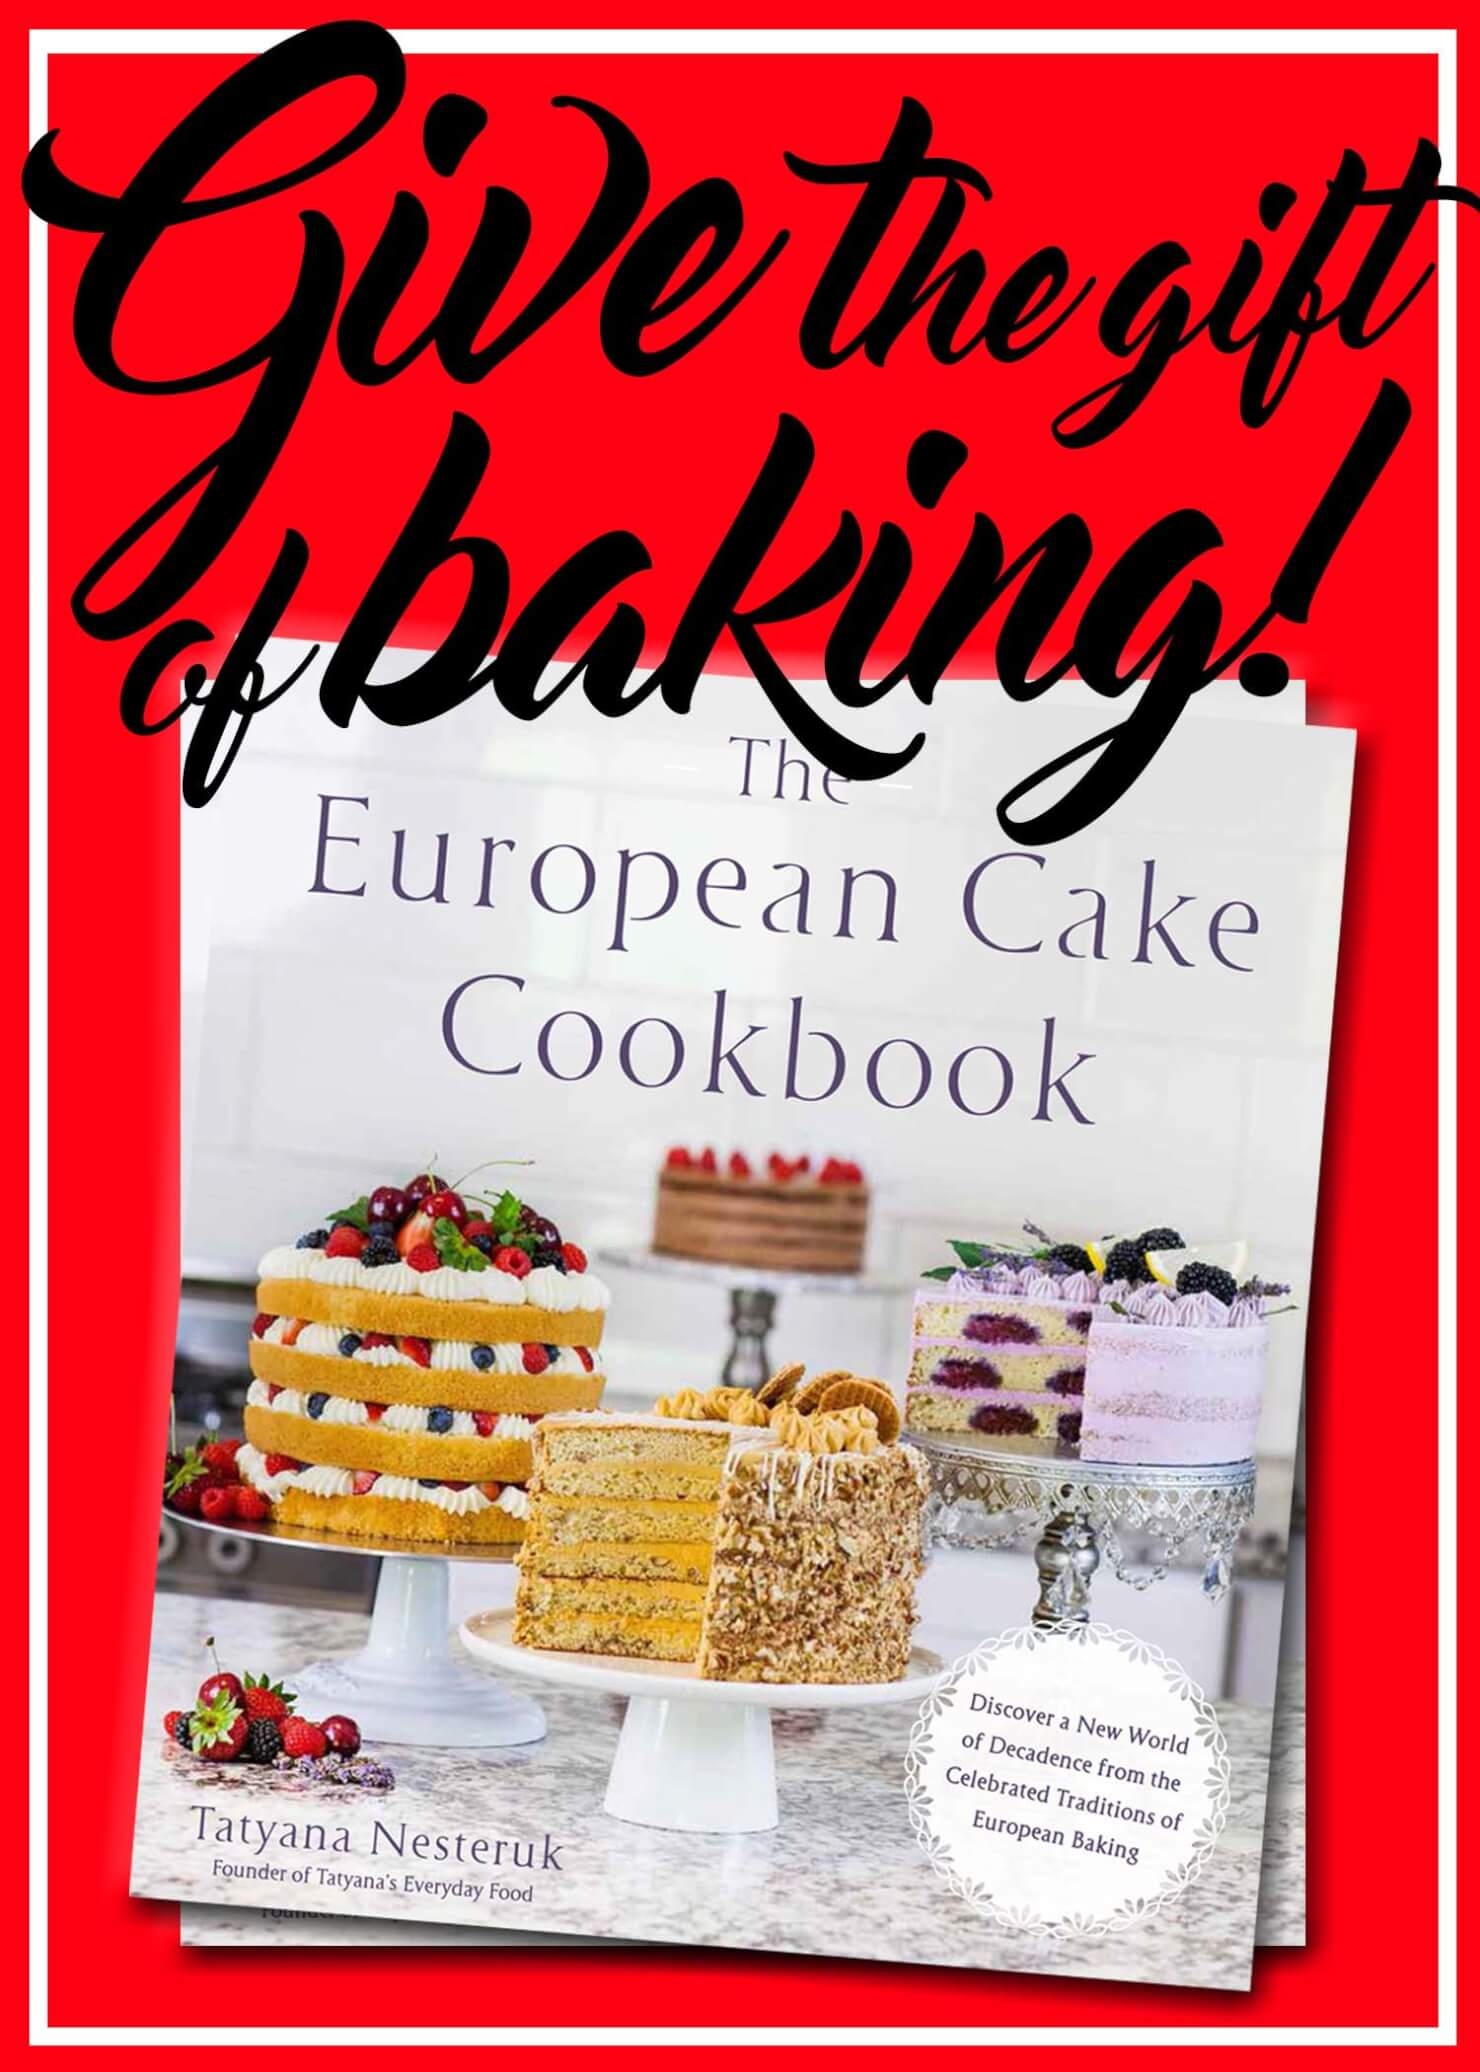 The European Cake Cookbook gift promo